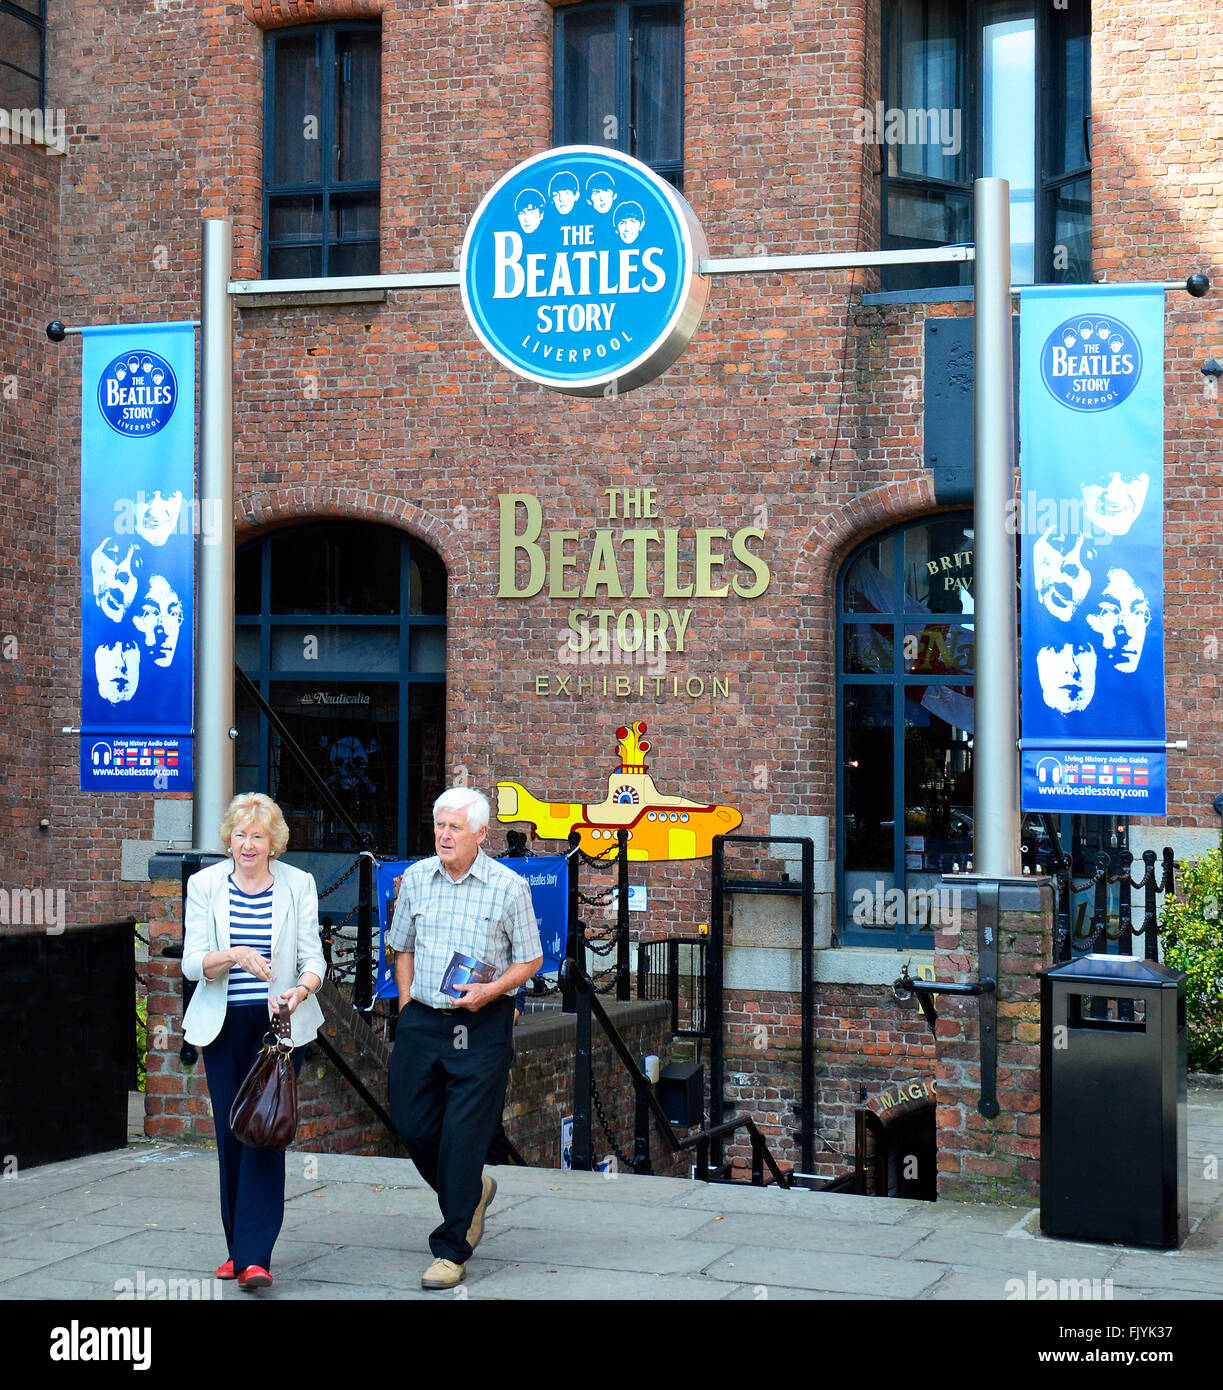 The Beatles story museum at the Albert Dock complex in Liverpool, England, UK Stock Photo